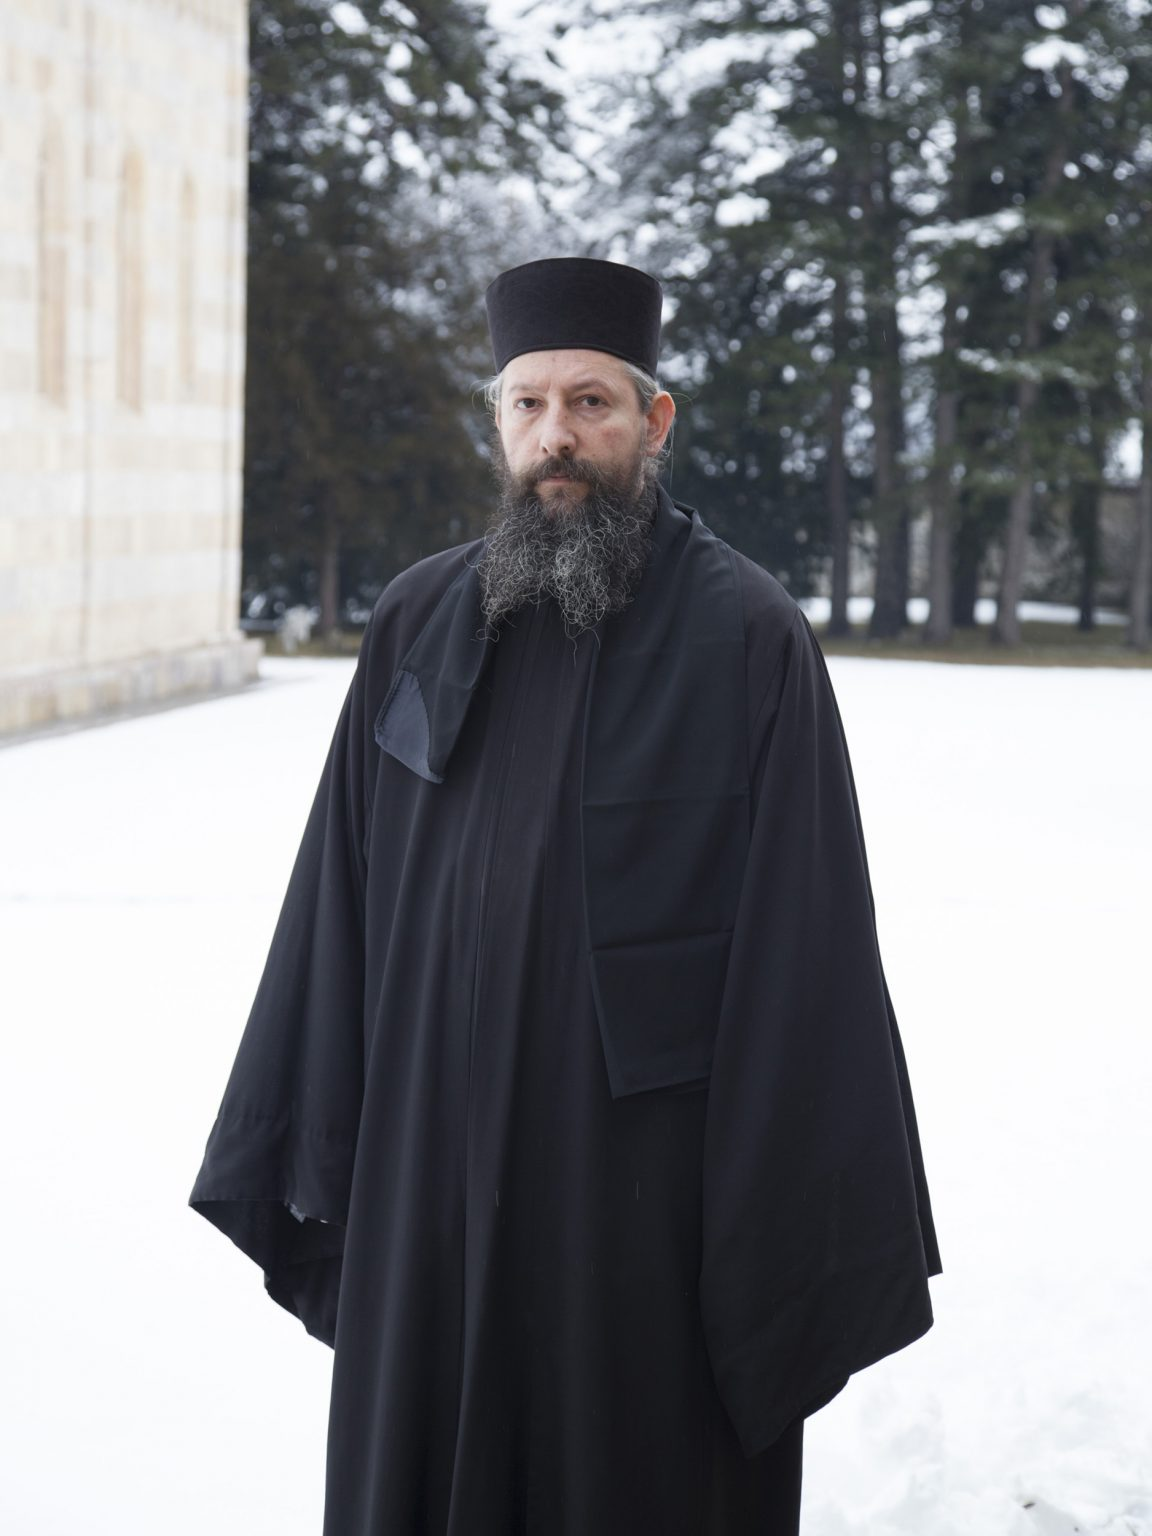 Father Peter, Orthodox Christian priest in the Deçan / Dečani Monastery.  The monastery of the 14th century is considered one of the most important palces for the Serbian cultural heritage.